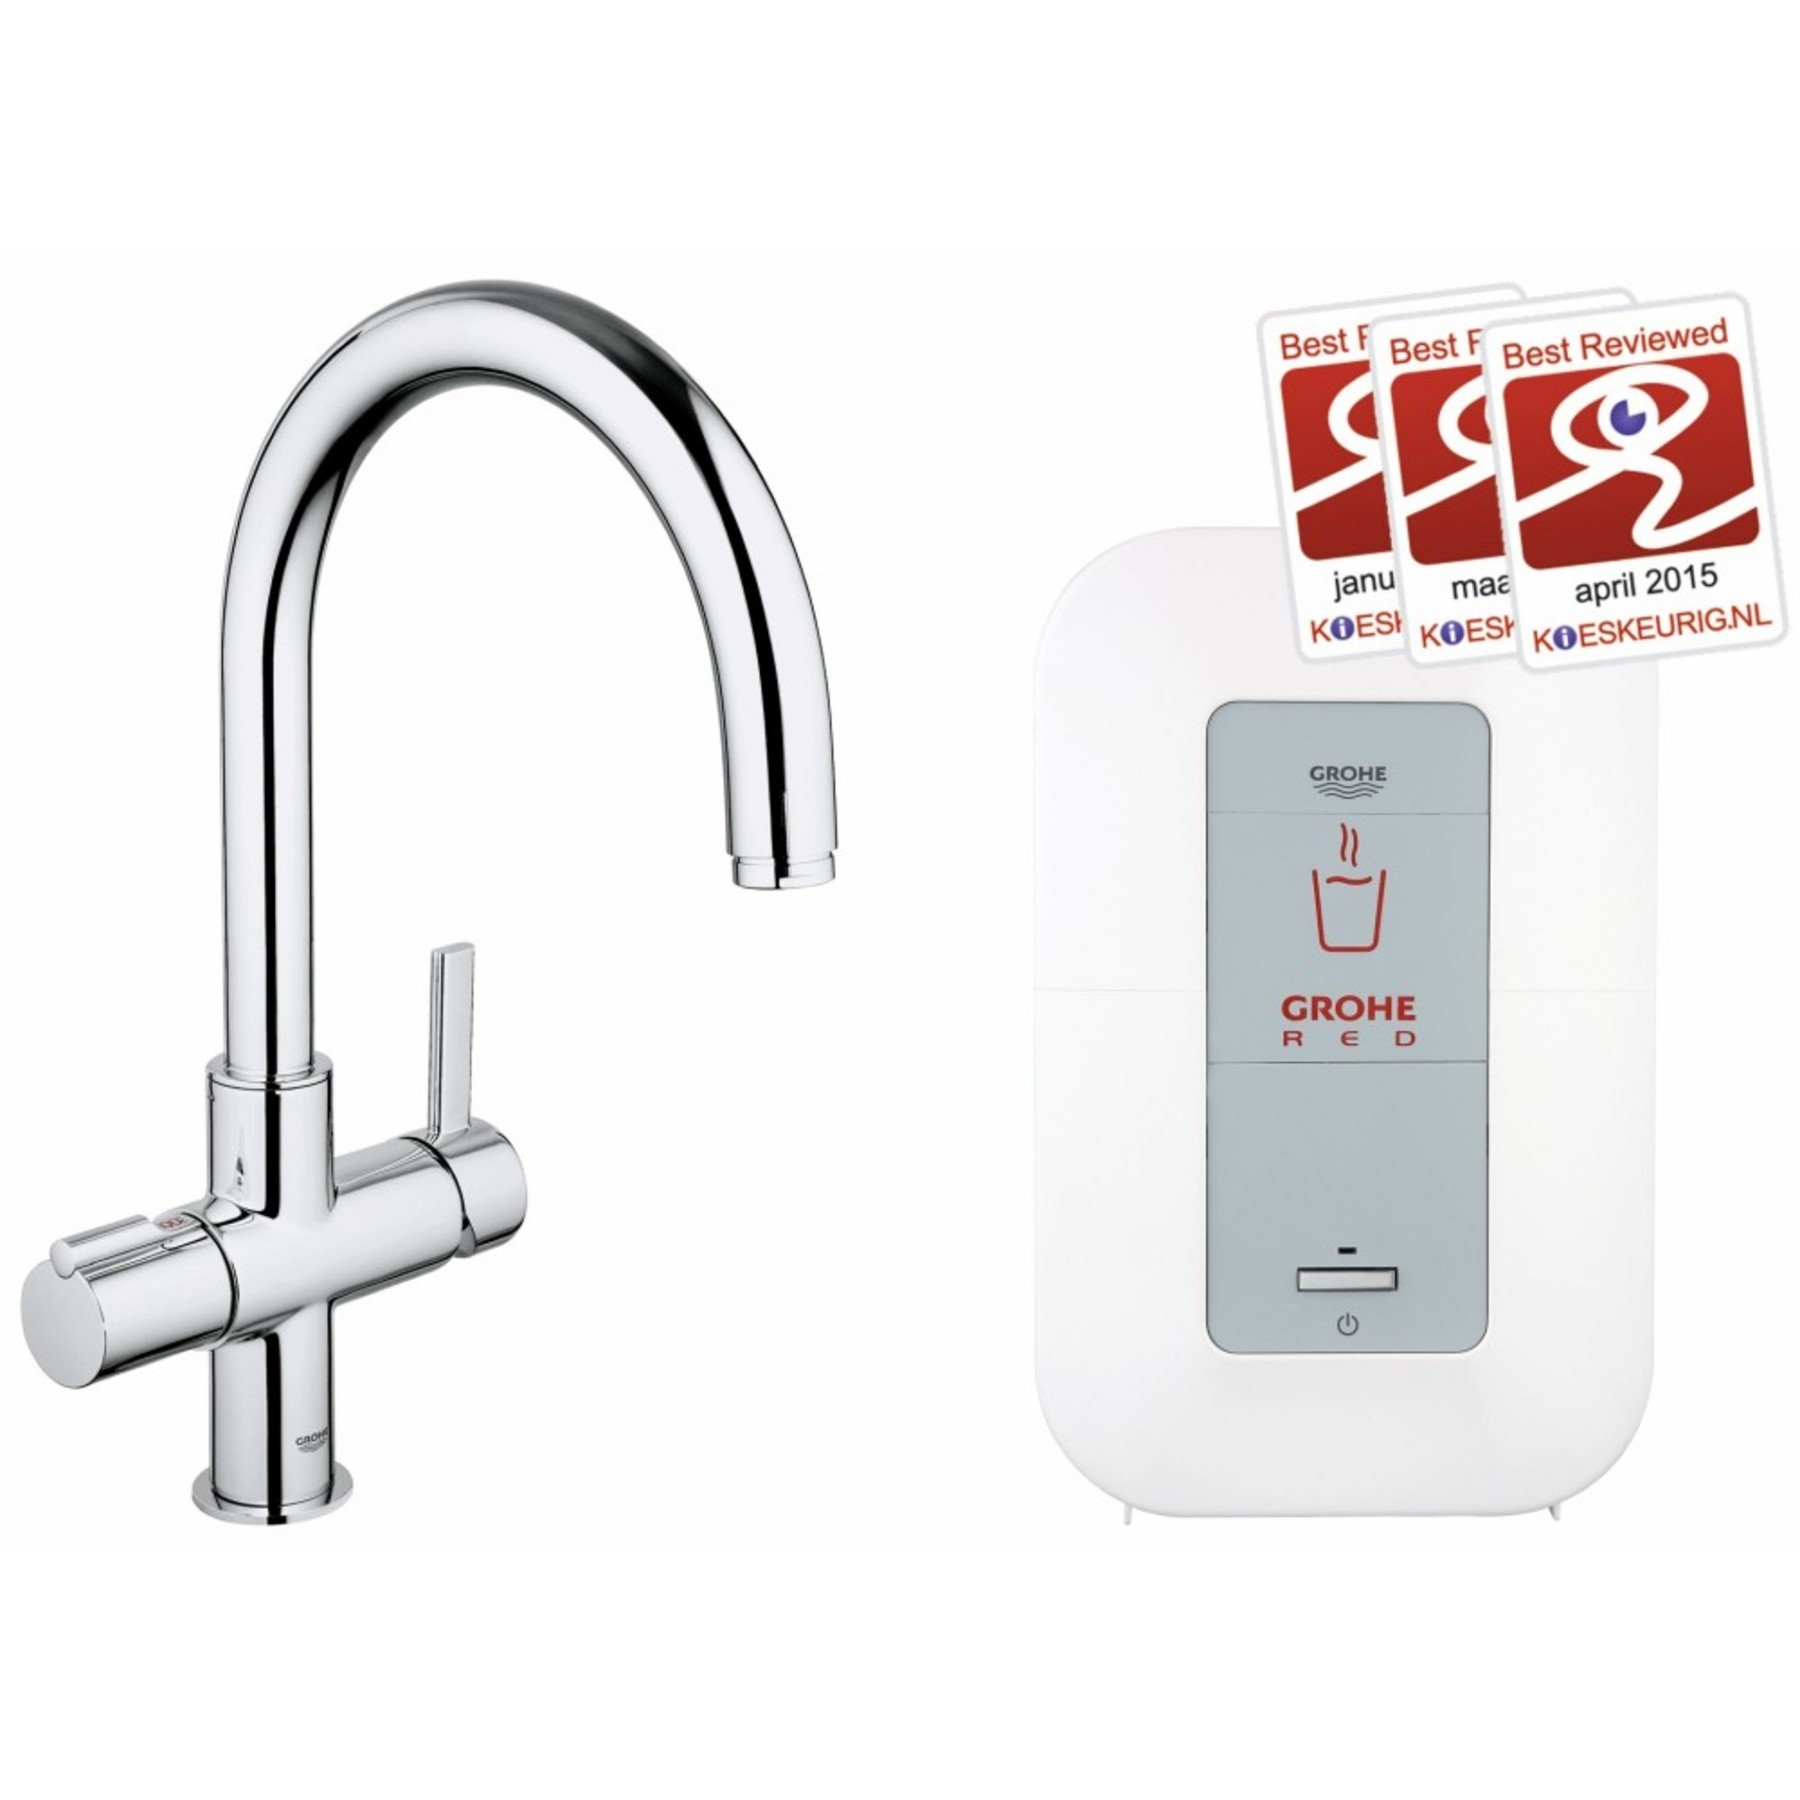 Grohe Red keukenkraan duo inclusief single boiler 4 liter 2100W chroom